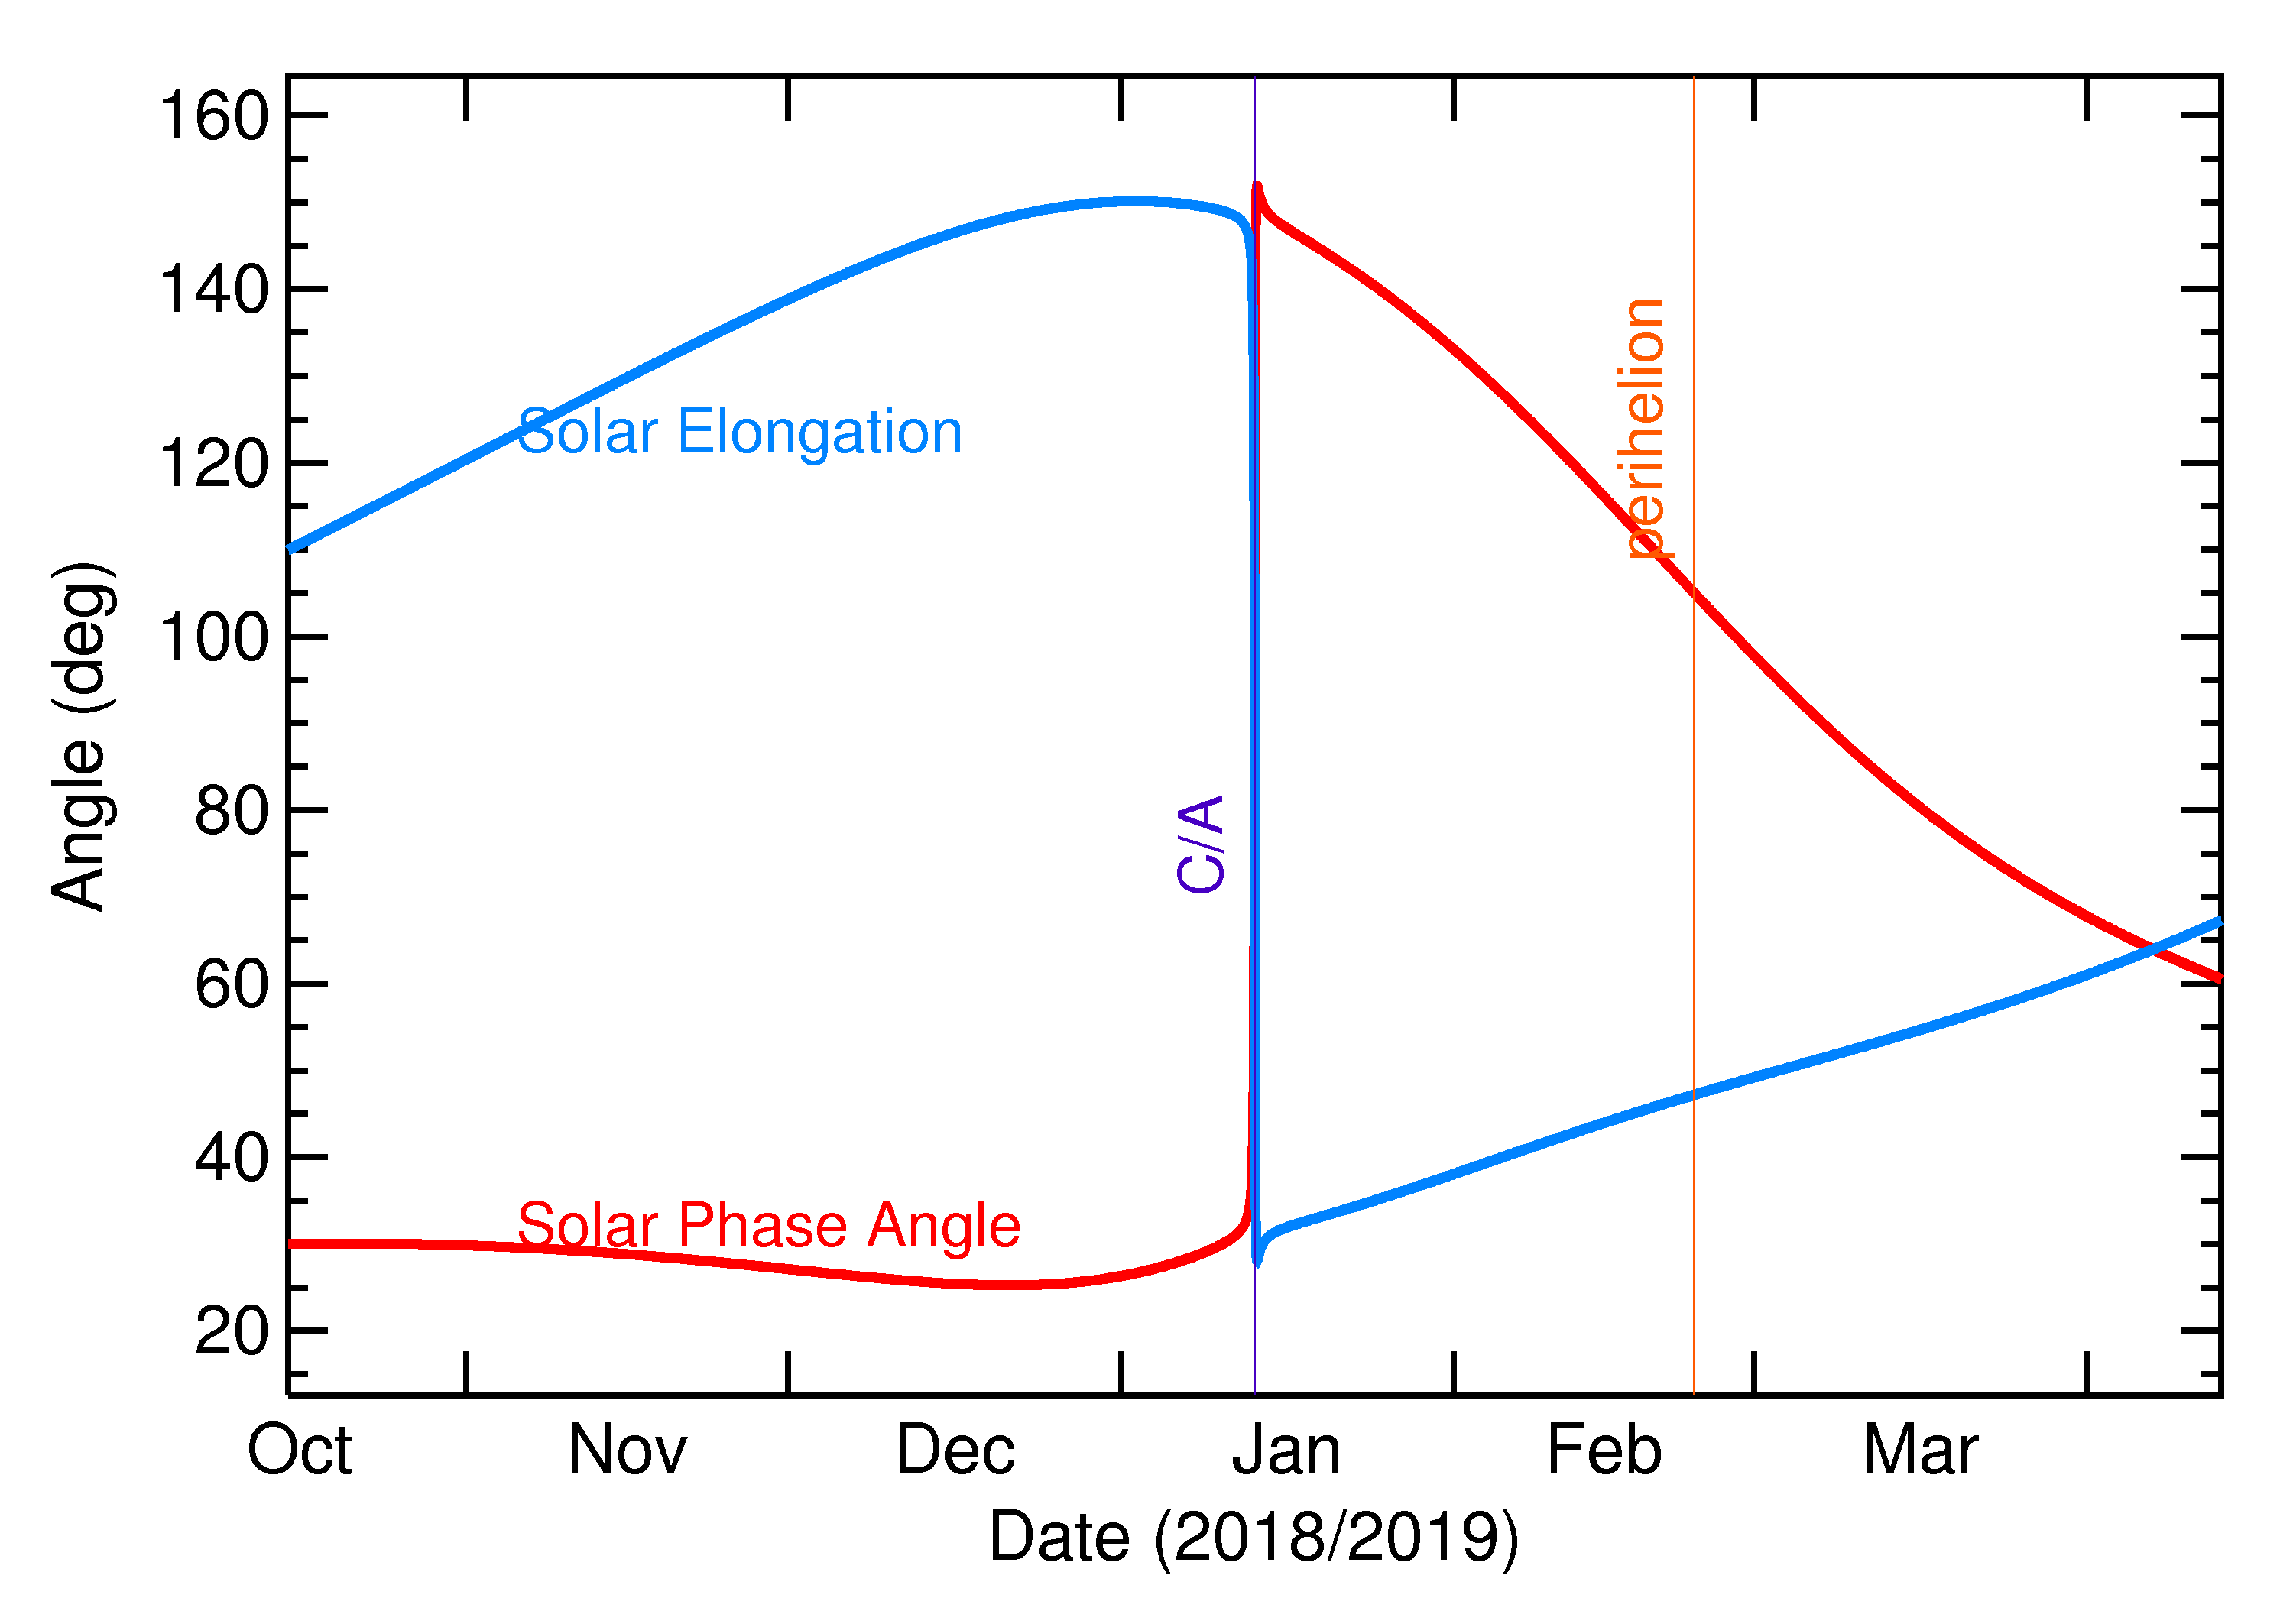 Solar Elongation and Solar Phase Angle of 2019 AE9 in the months around closest approach